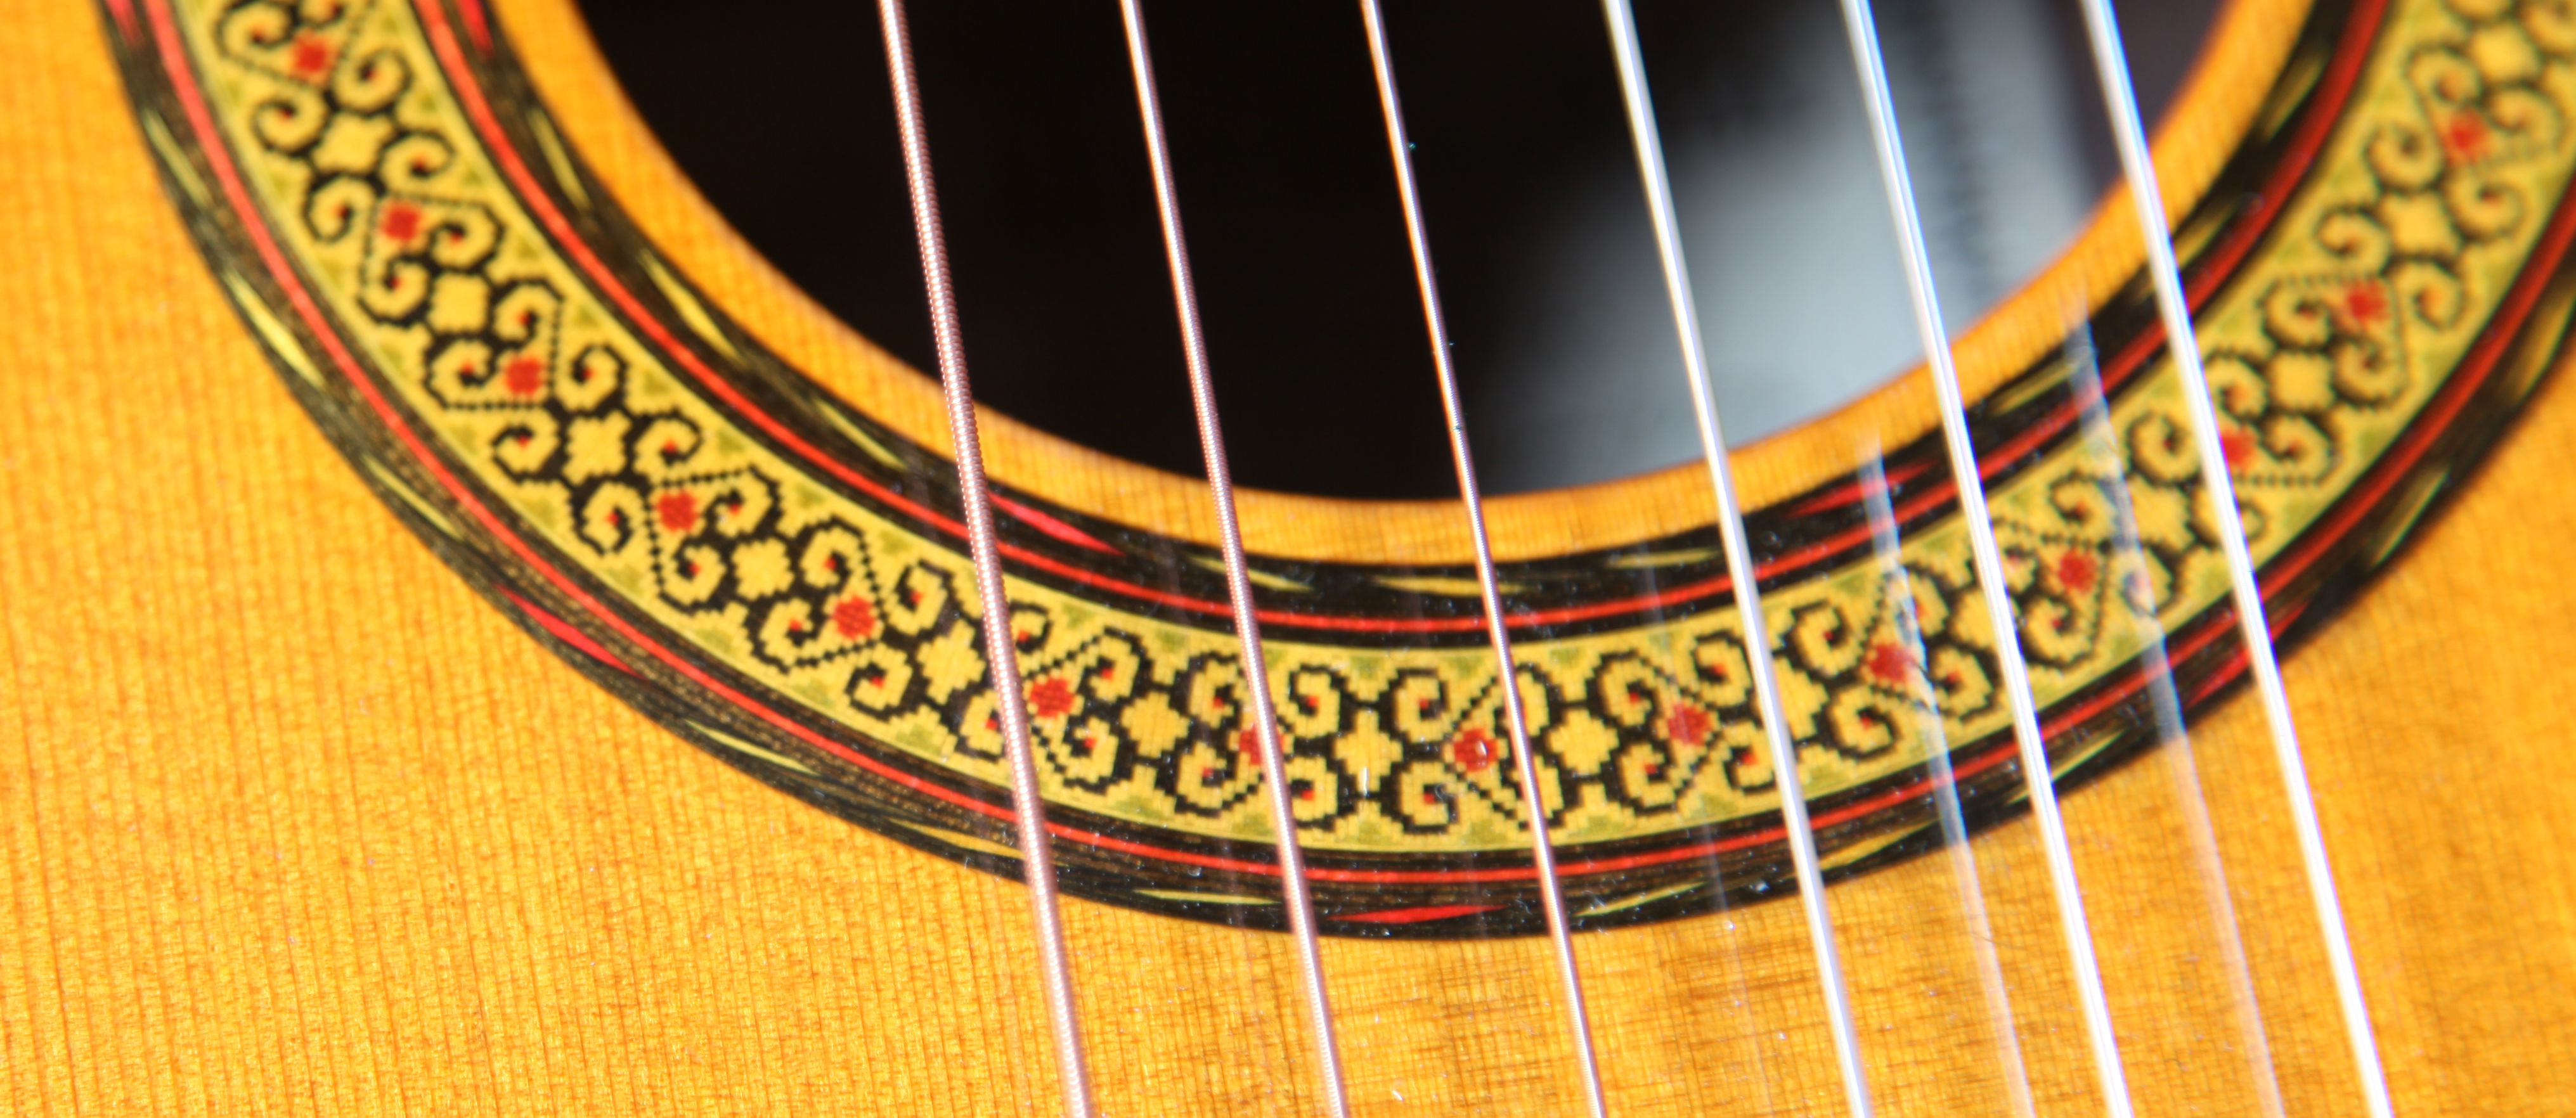 classical guitar ensemble